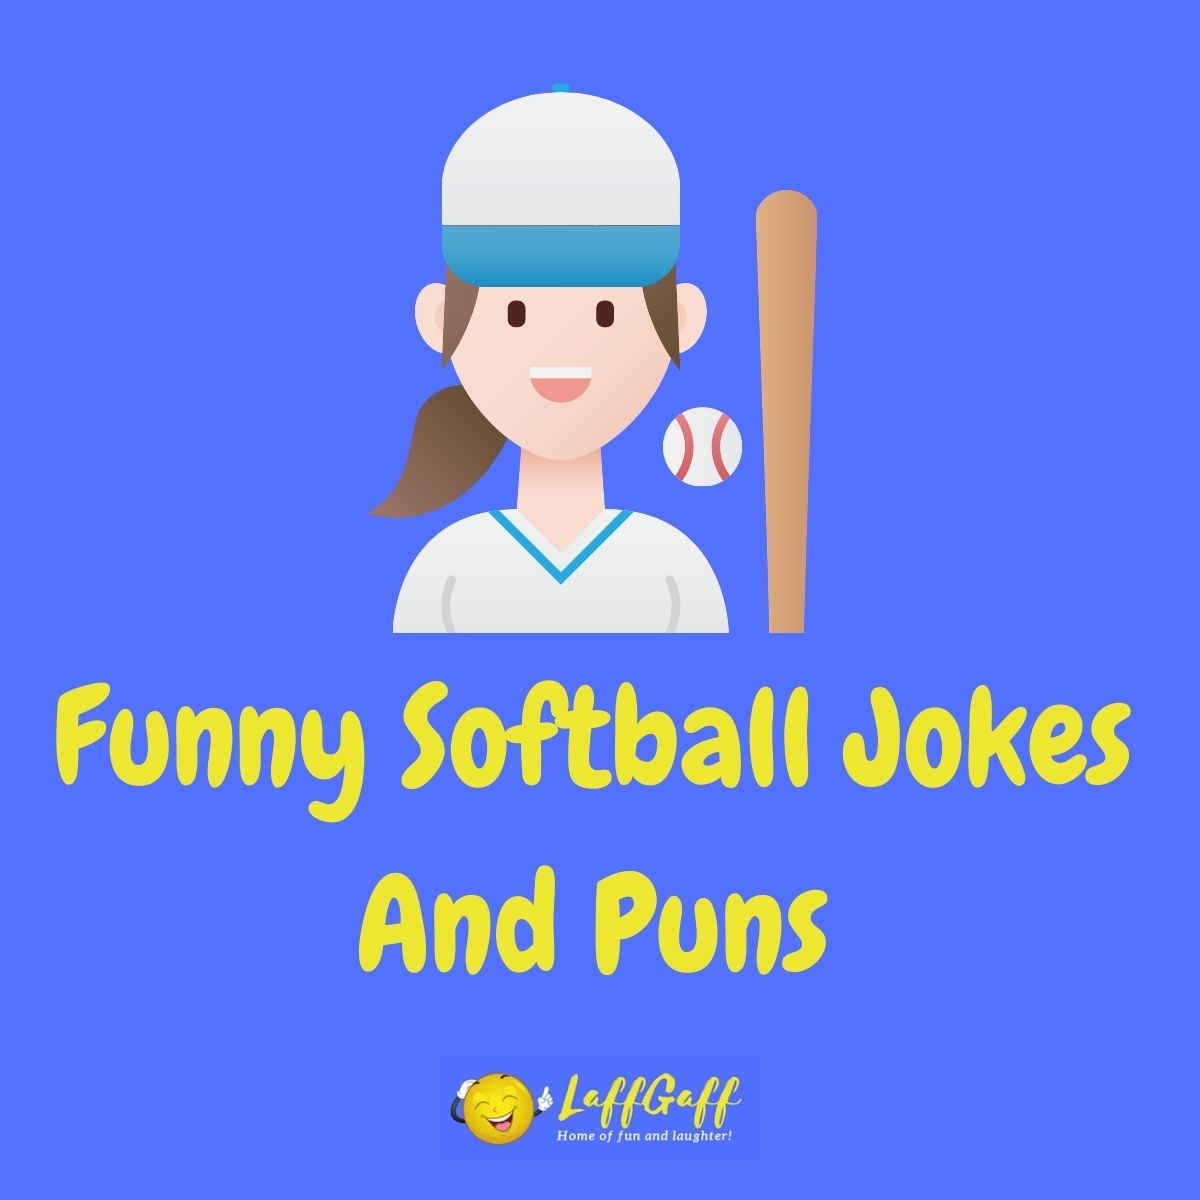 Featured image for a page of funny softball jokes and puns.